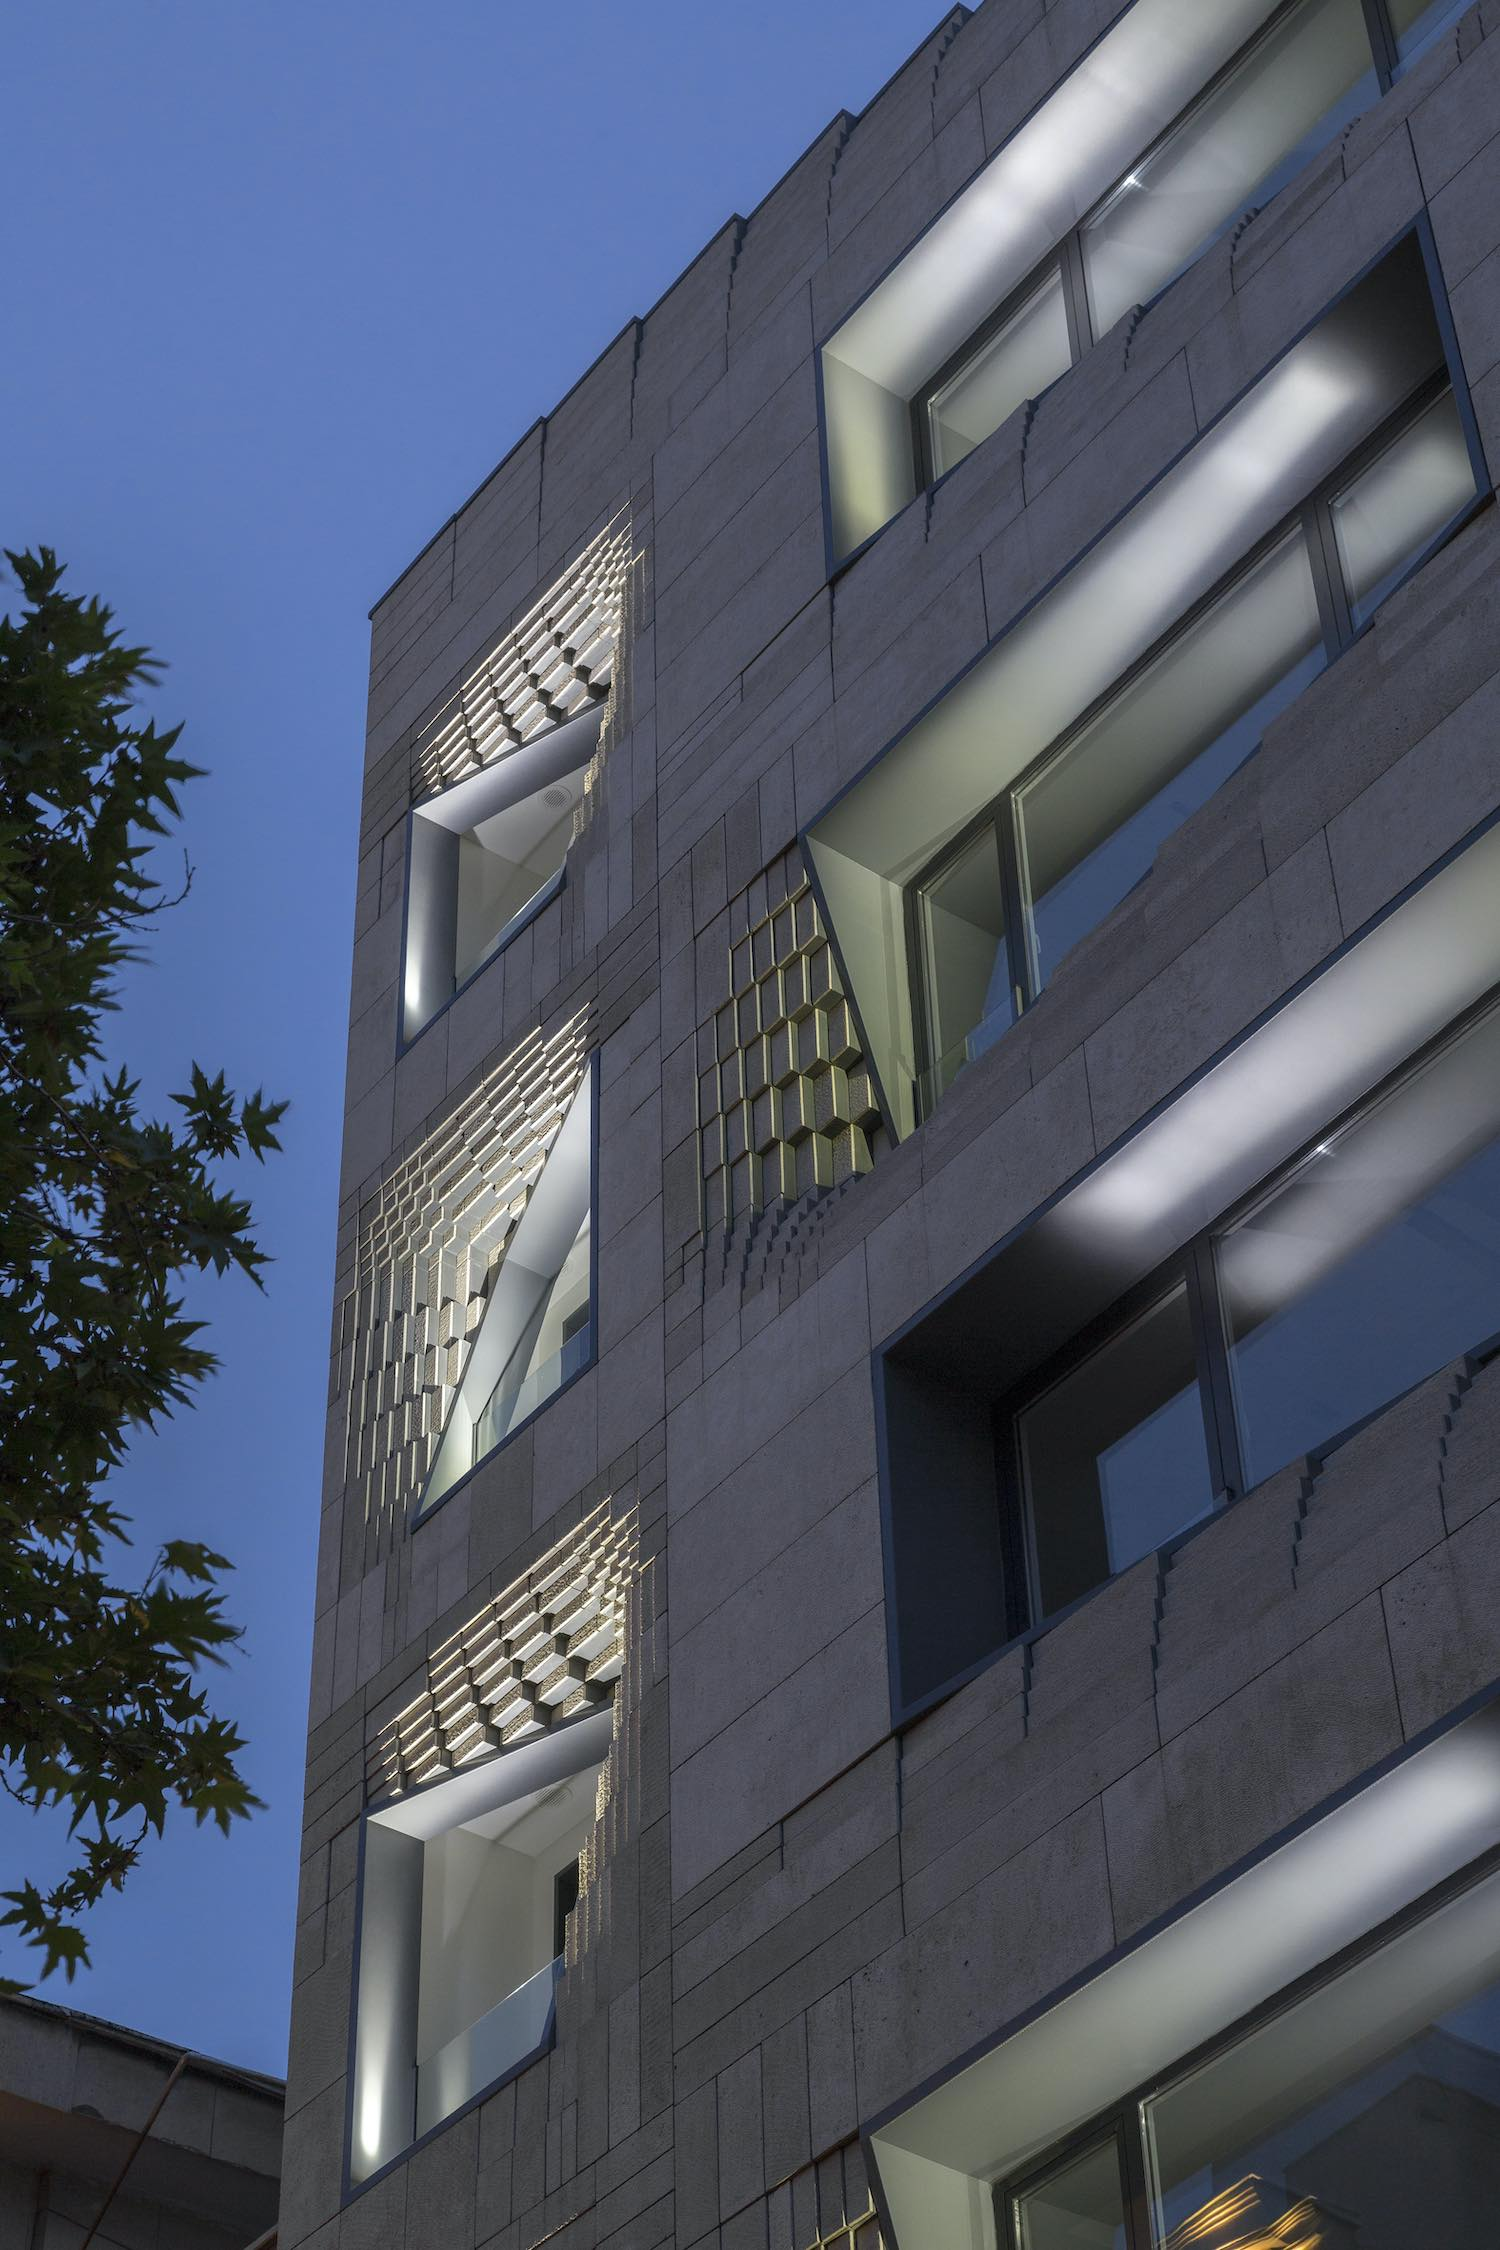 the windows in the facade illuminated with light